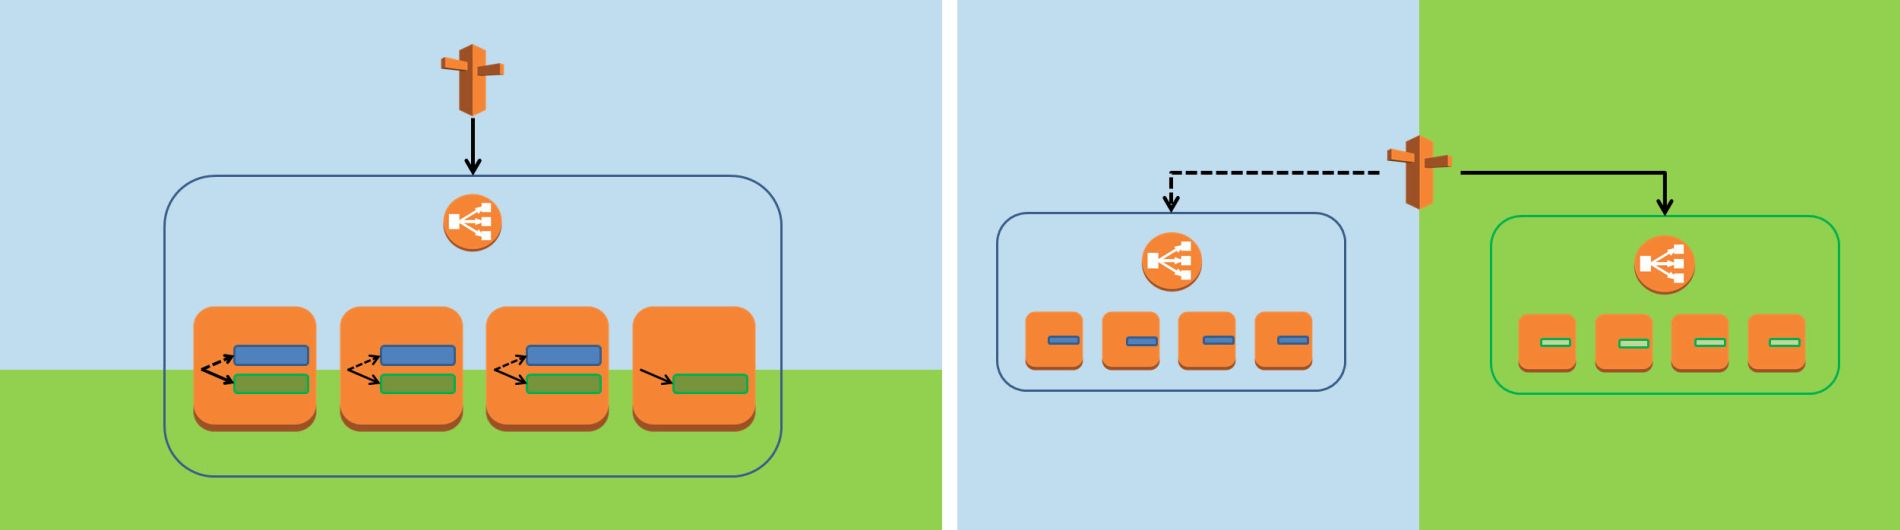 Some thoughts on SUPER-scaling Magento, and a little bit of